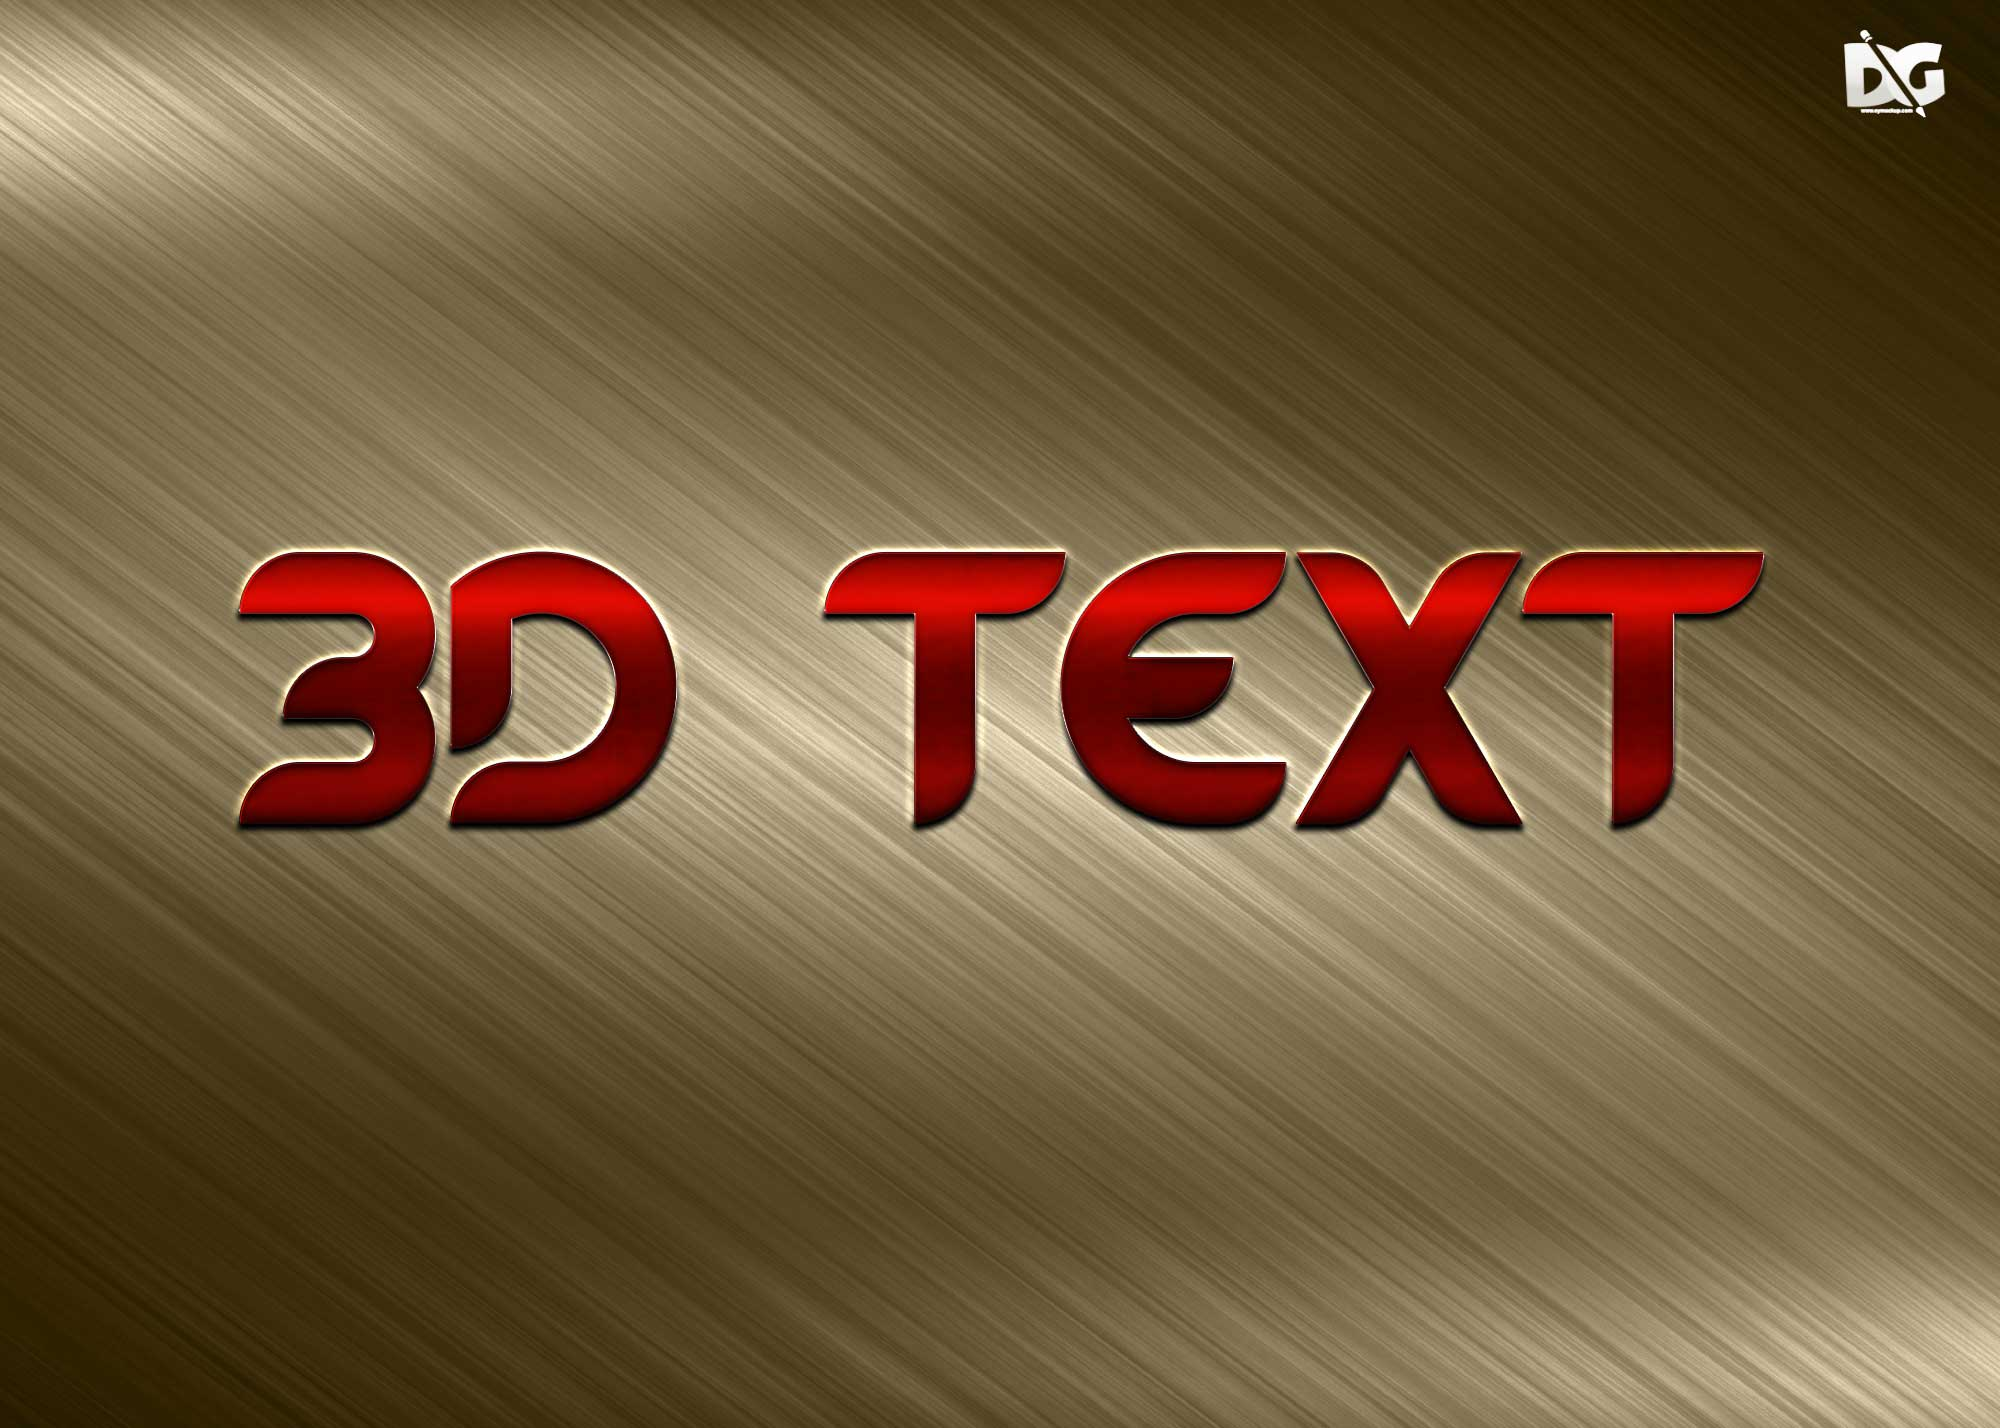 photoshop text effects 2017